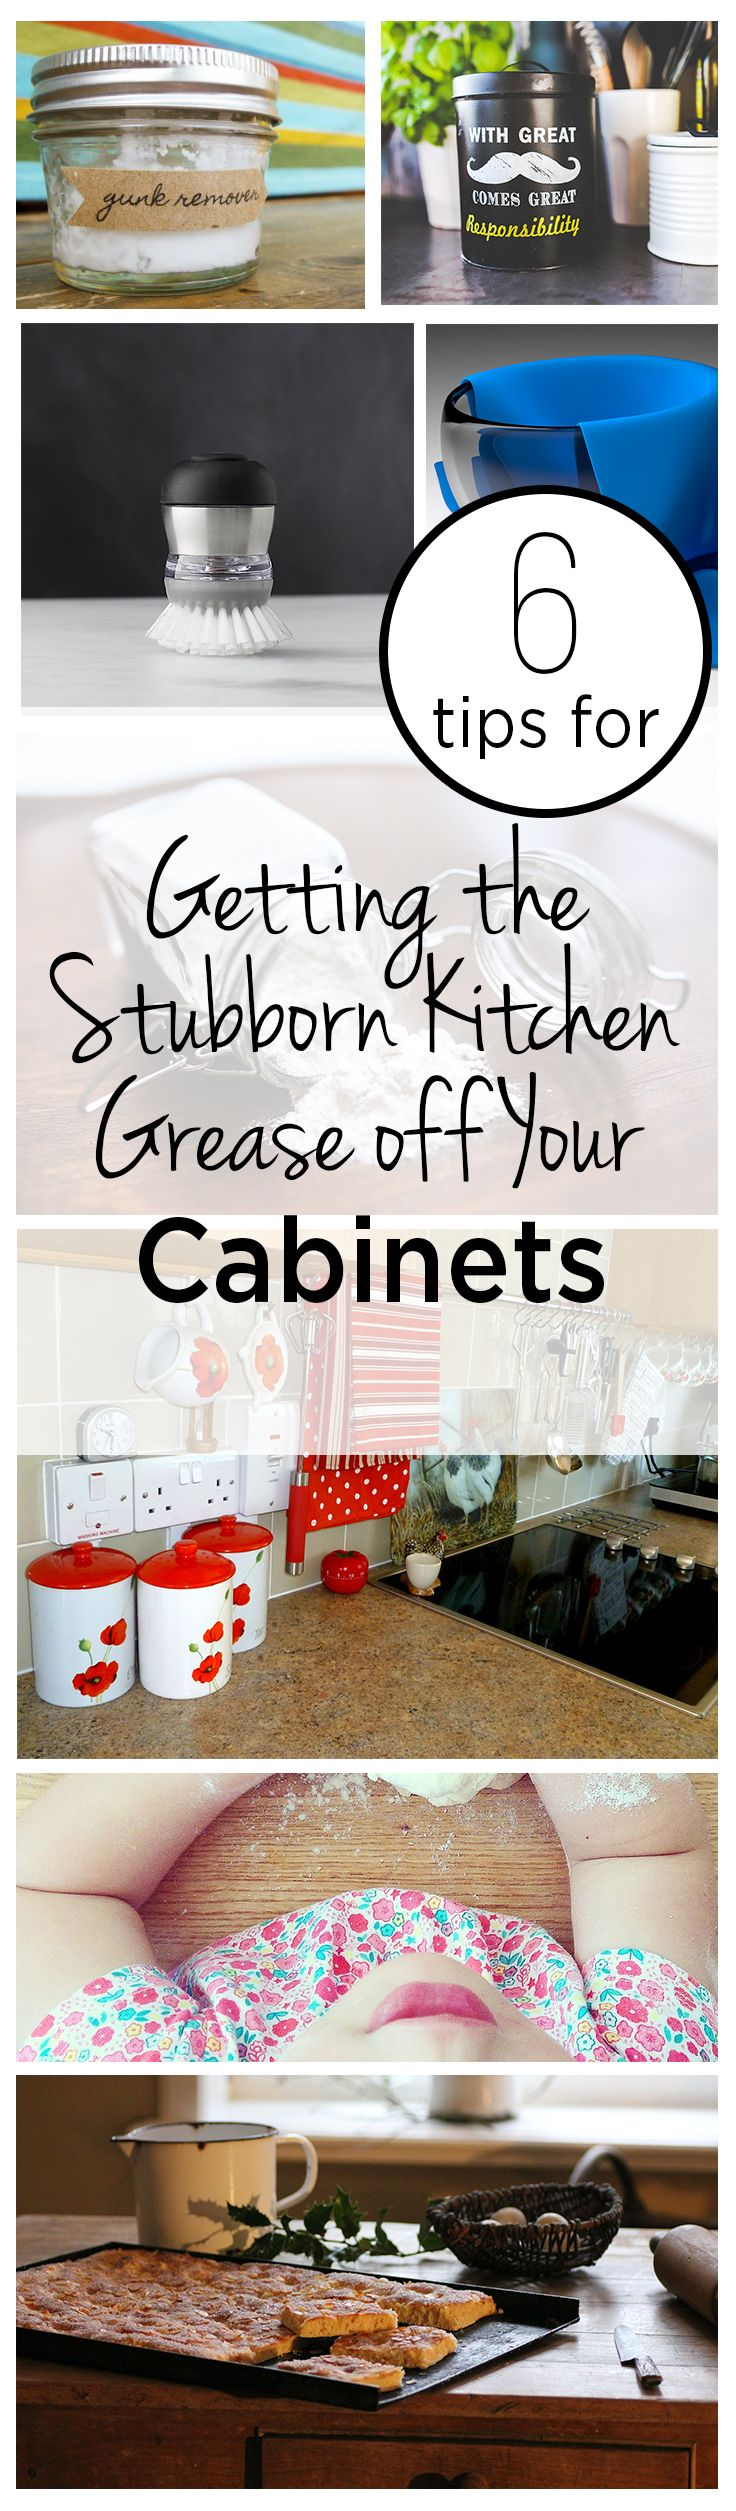 6 Tips for Getting the Stubborn Kitchen Grease off Your Cabinets